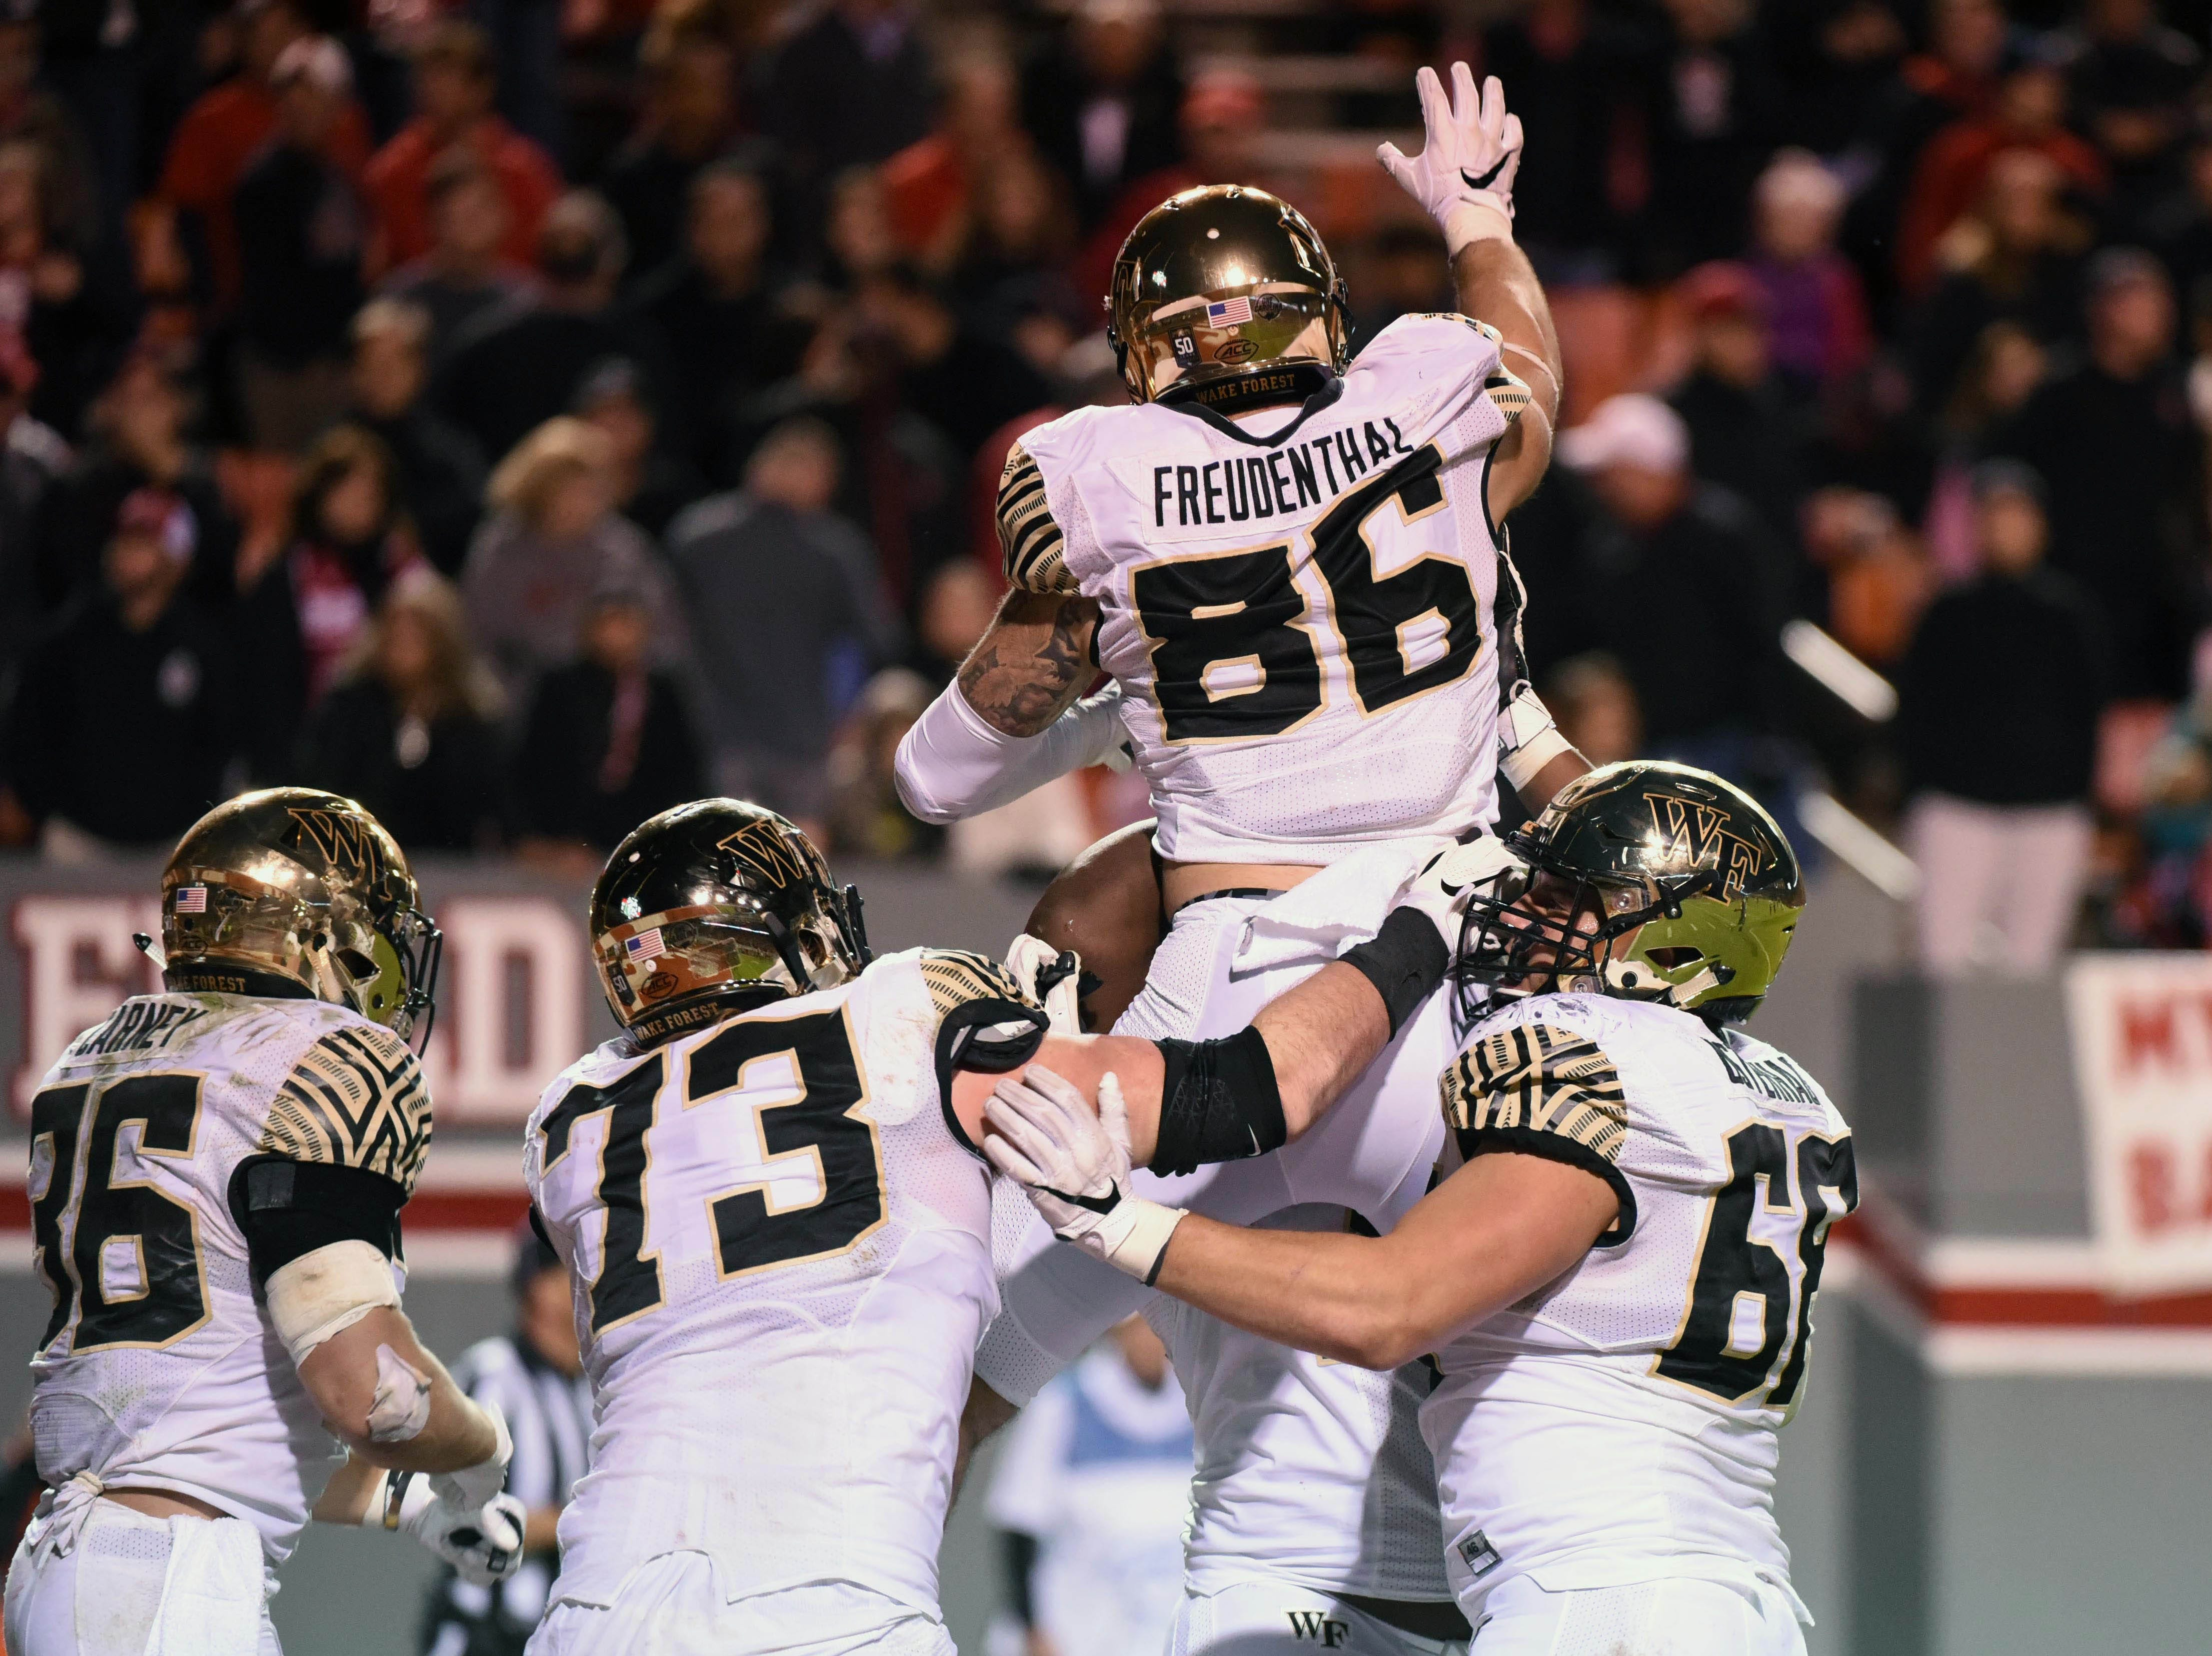 Wake Forest Demon Deacons tight end Jack Freudenthal (86) is greeted by teammates after scoring the game-winning touchdown during the second half against the North Carolina State Wolfpack at Carter-Finley Stadium.